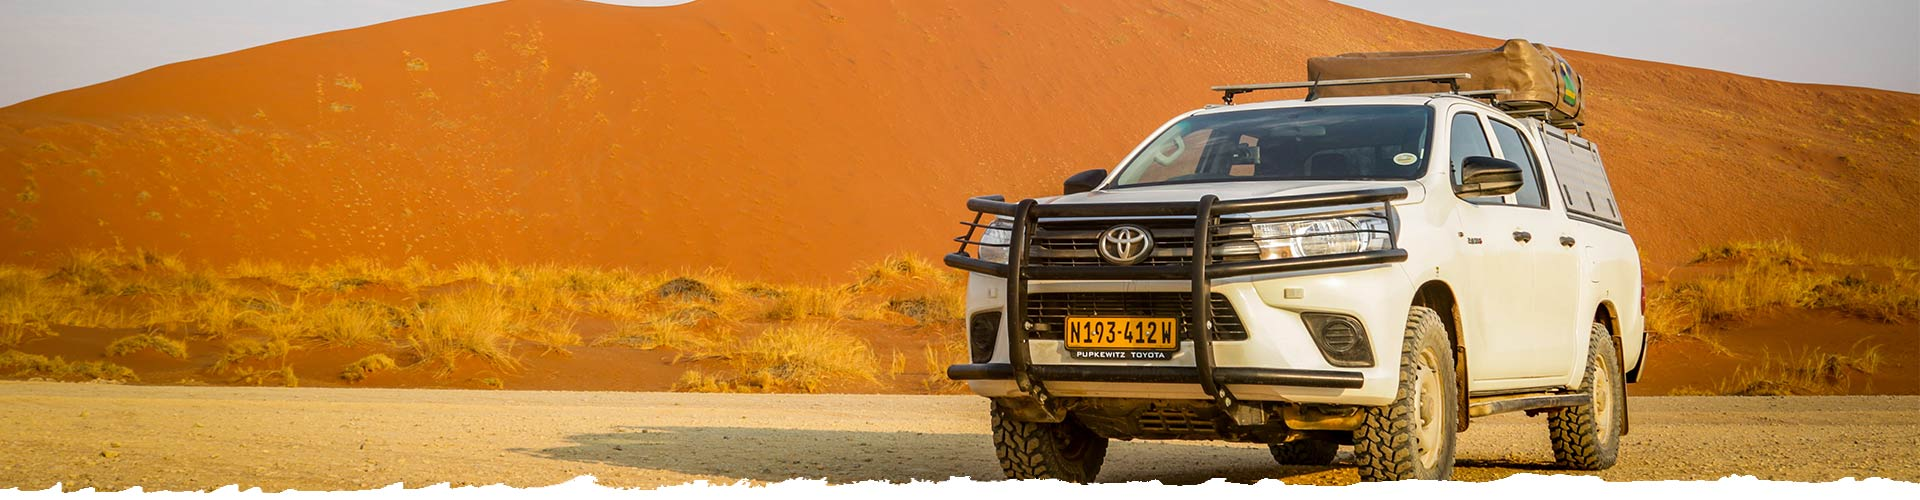 Autohuur-Namibie-Toyota-Hilux-2.5TD-4x4-Double-Cab-Camping-2pax-slider